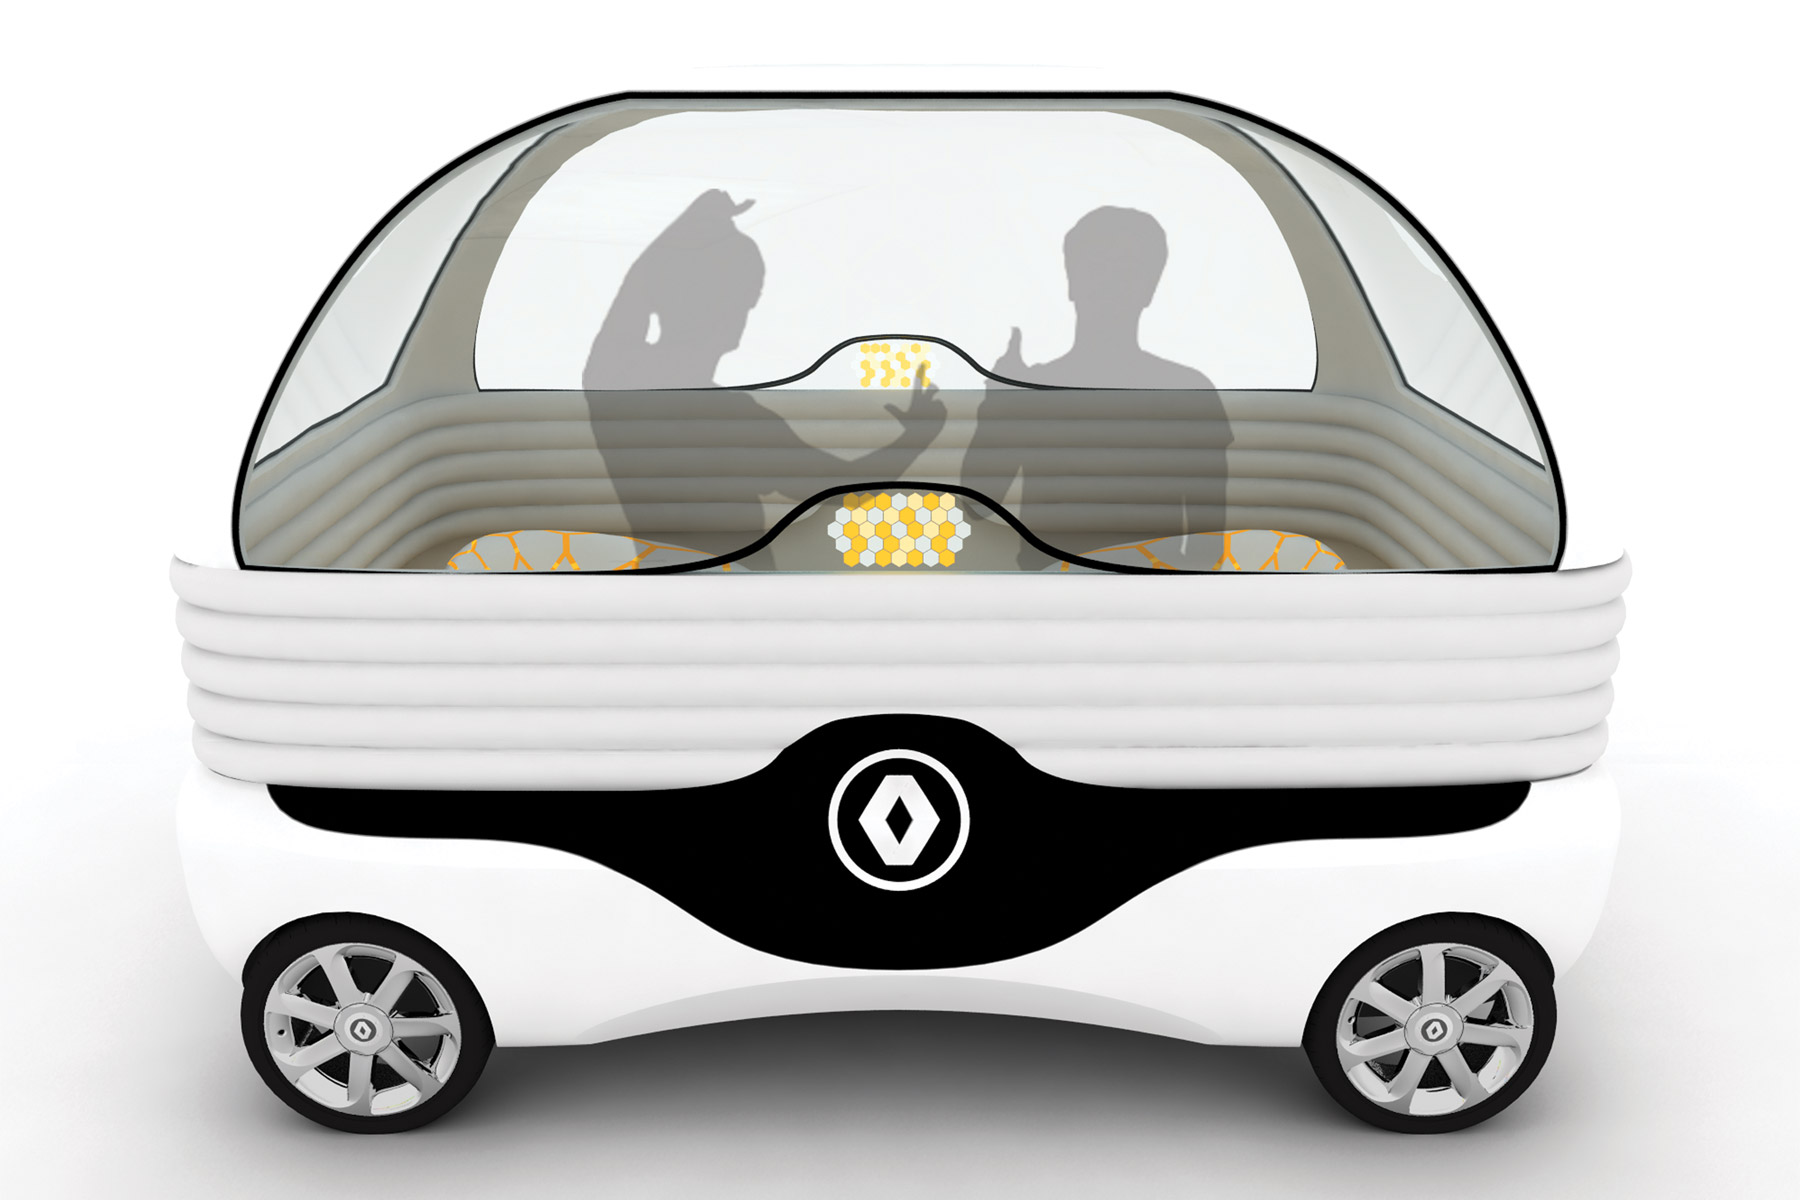 Will driverless cars look like this?